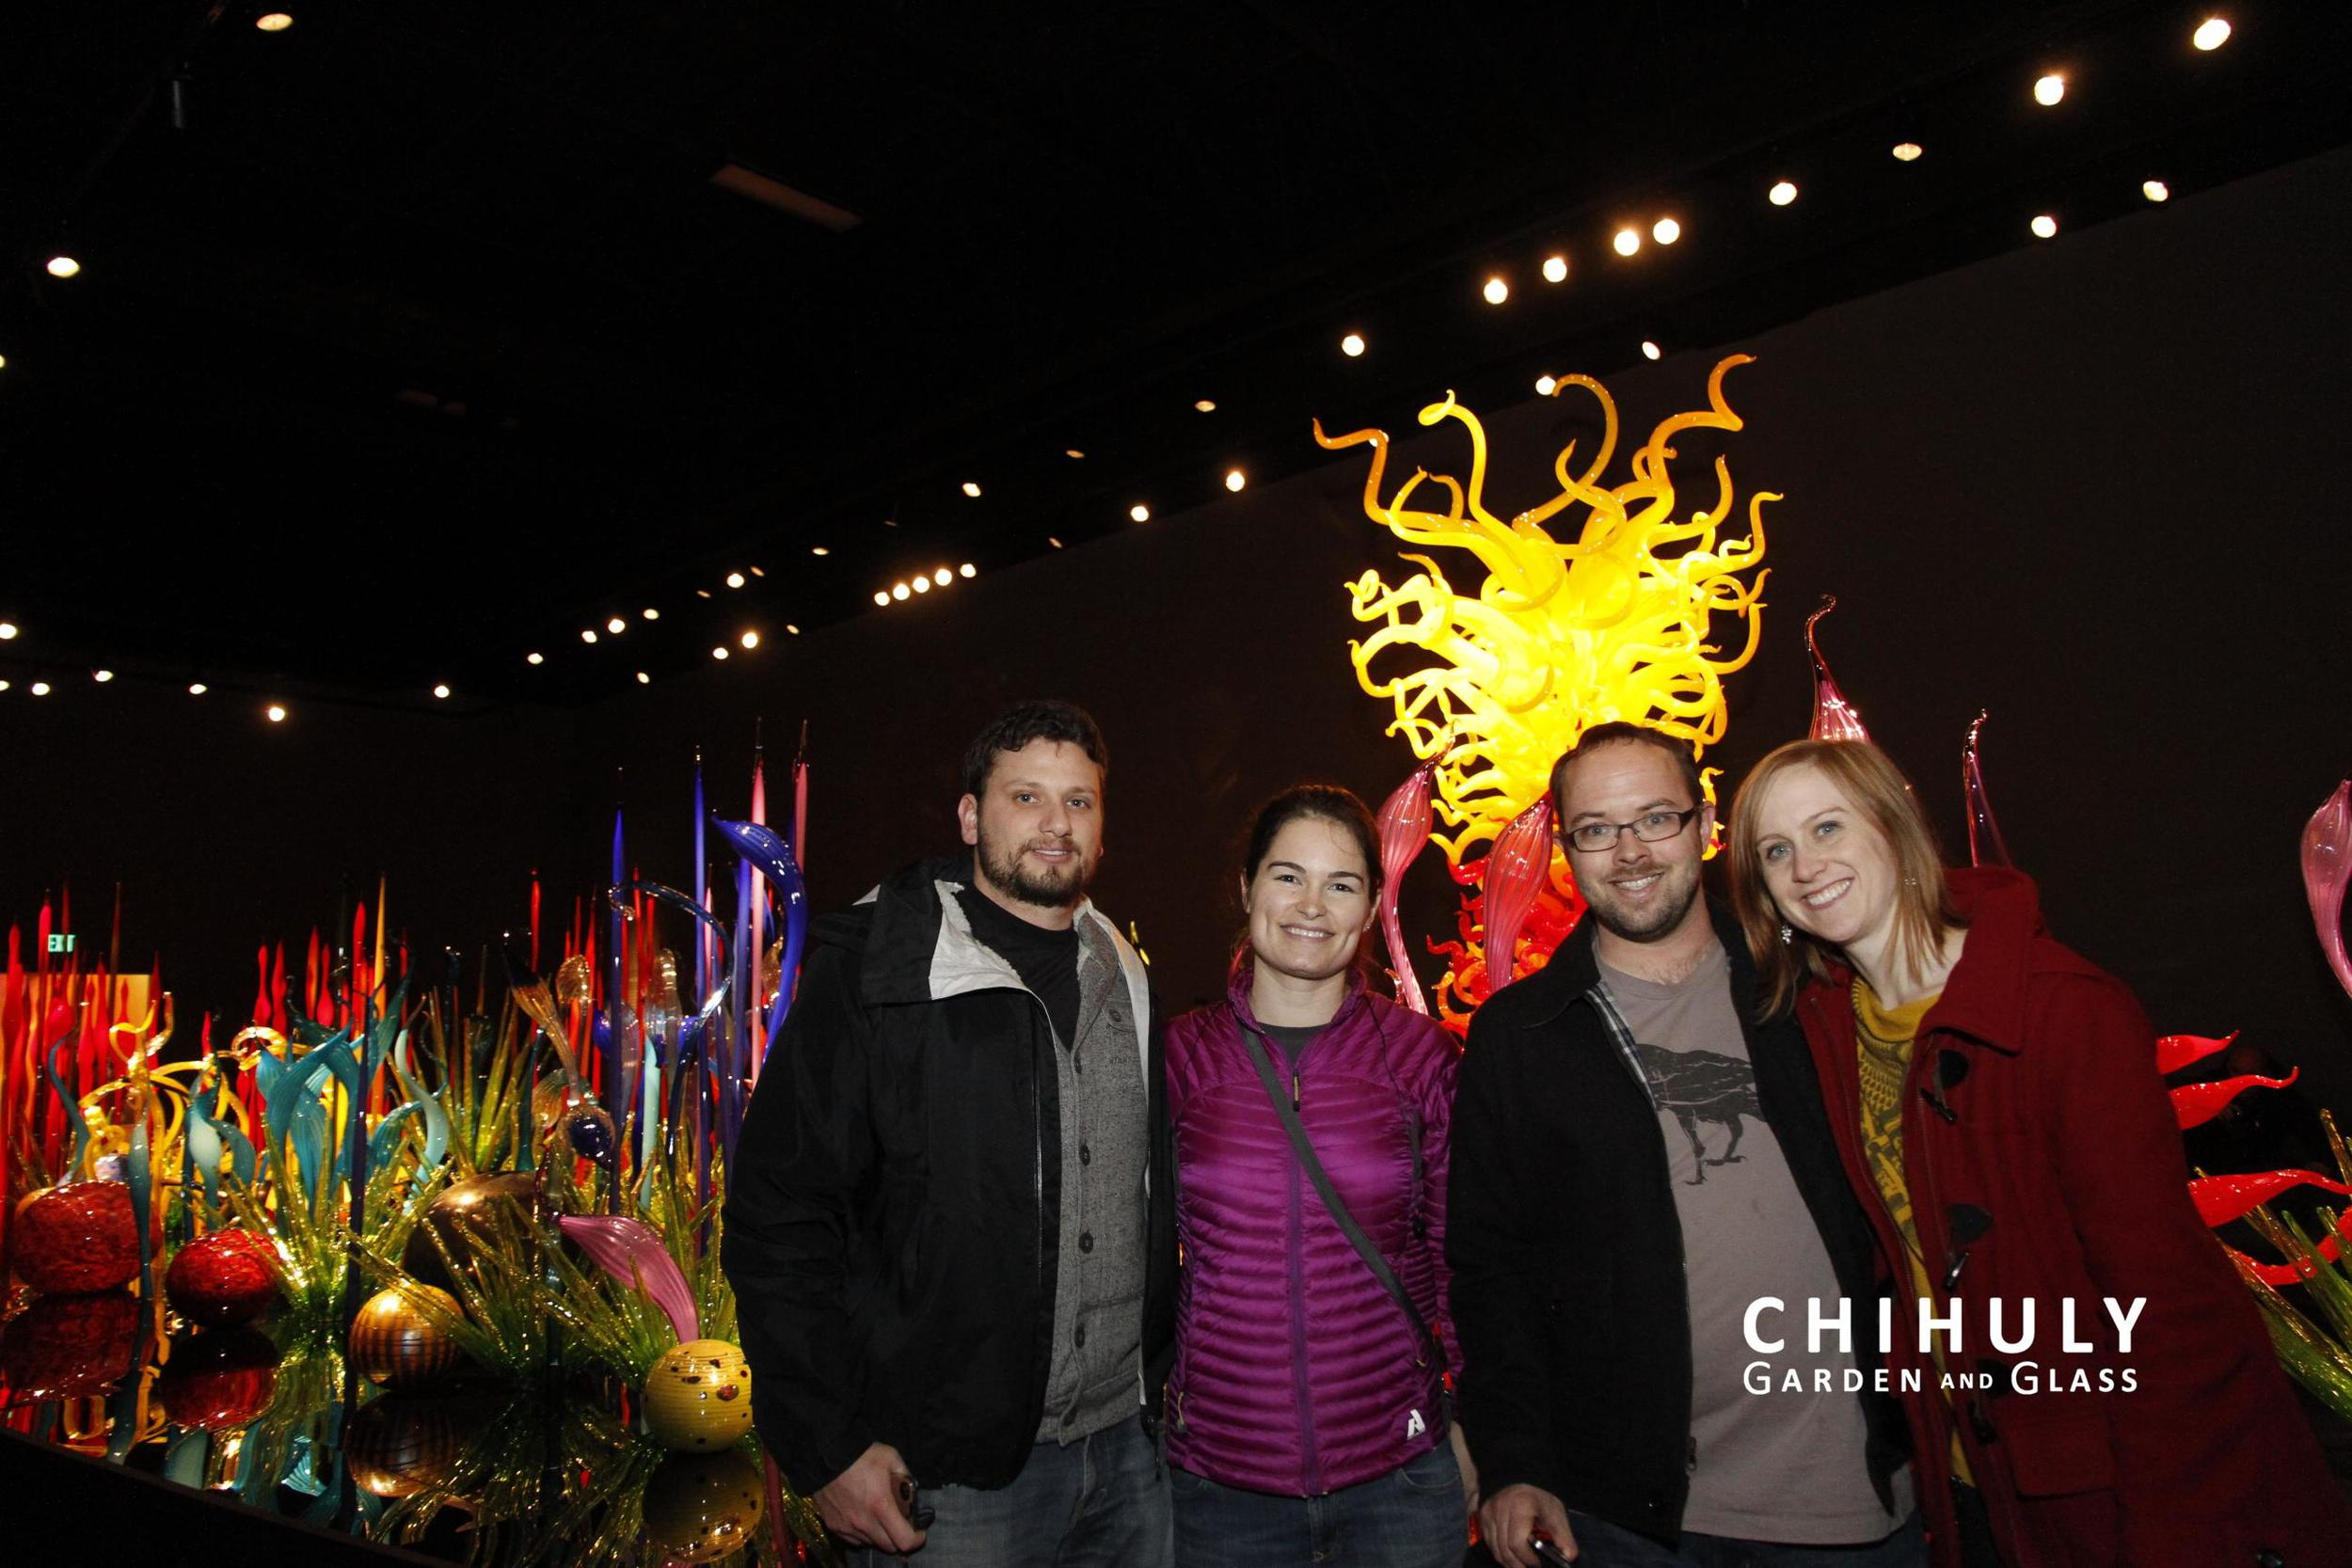 Aaron, Liddy, Josh, and Heather at Chihuly